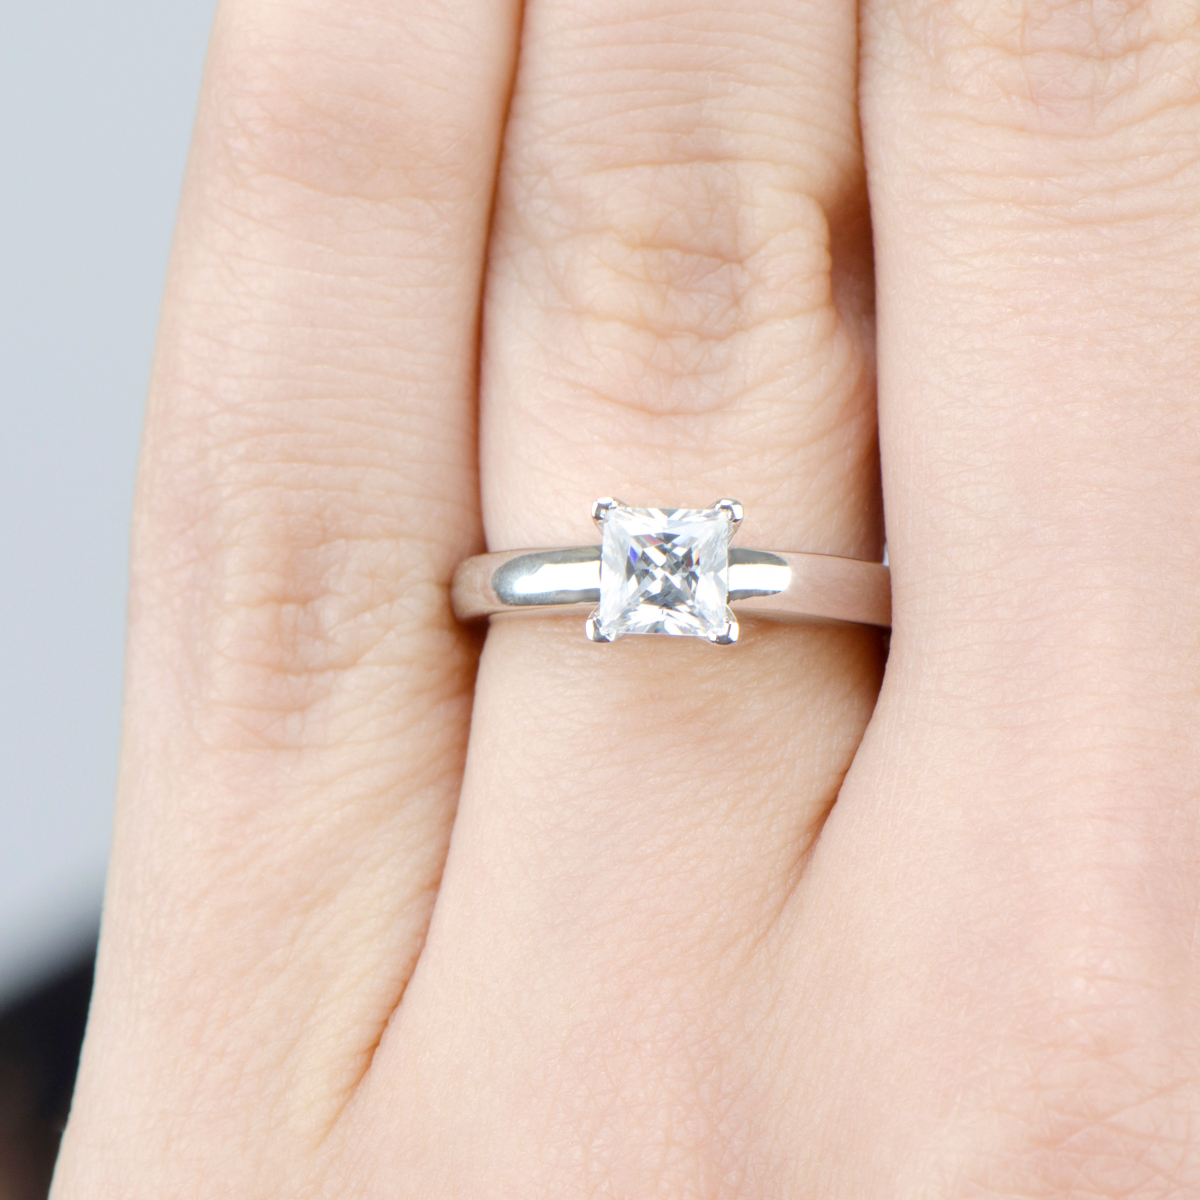 Is a 1-carat cubic zirconia the same size as a 1-carat diamond?